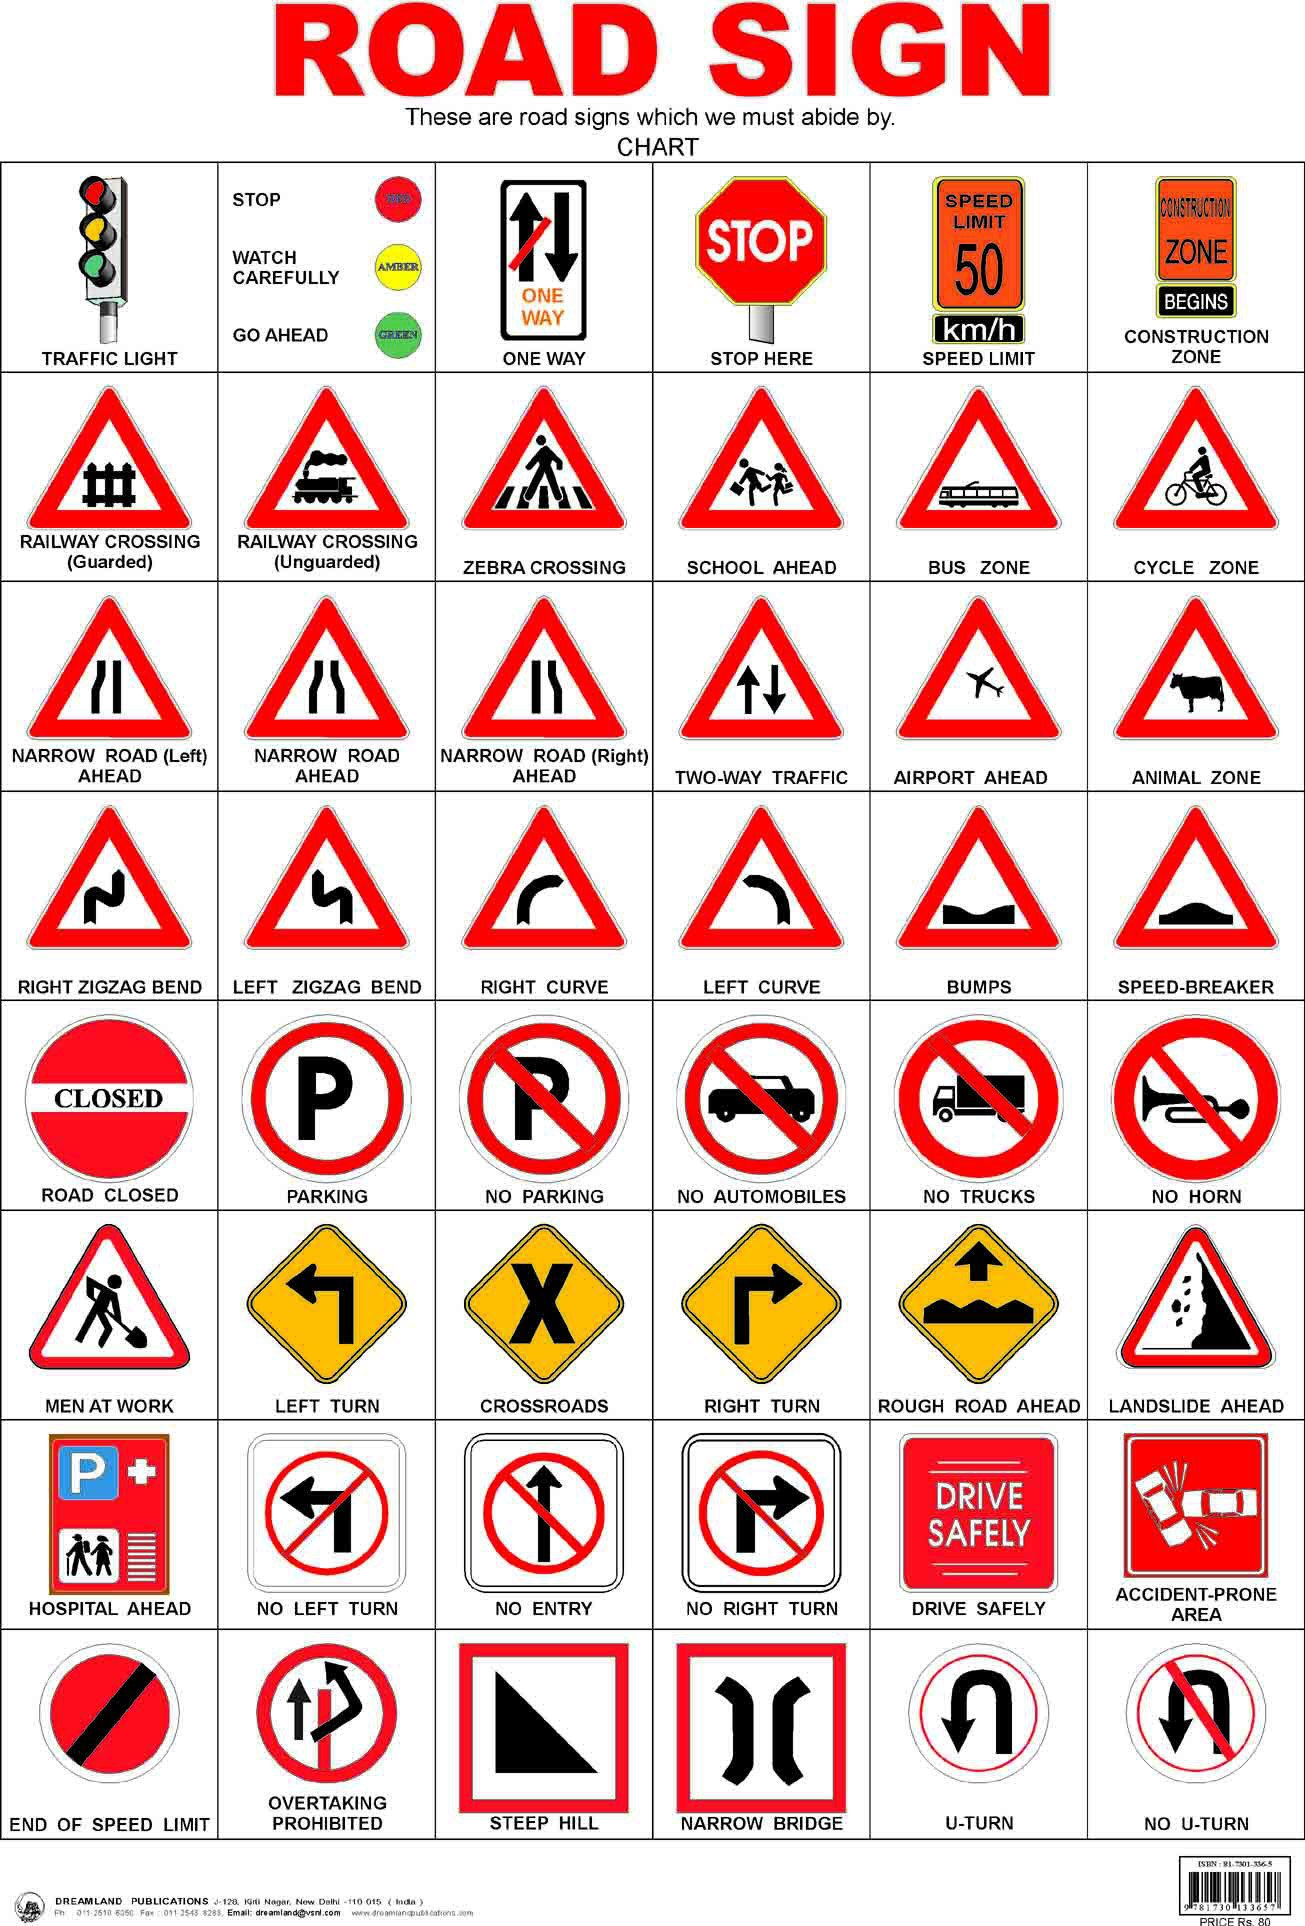 Pin By Reeshma Shetty On Symbols Scripts Typography Codes Fonts Road Traffic Signs Road Safety Signs Traffic Sign Boards